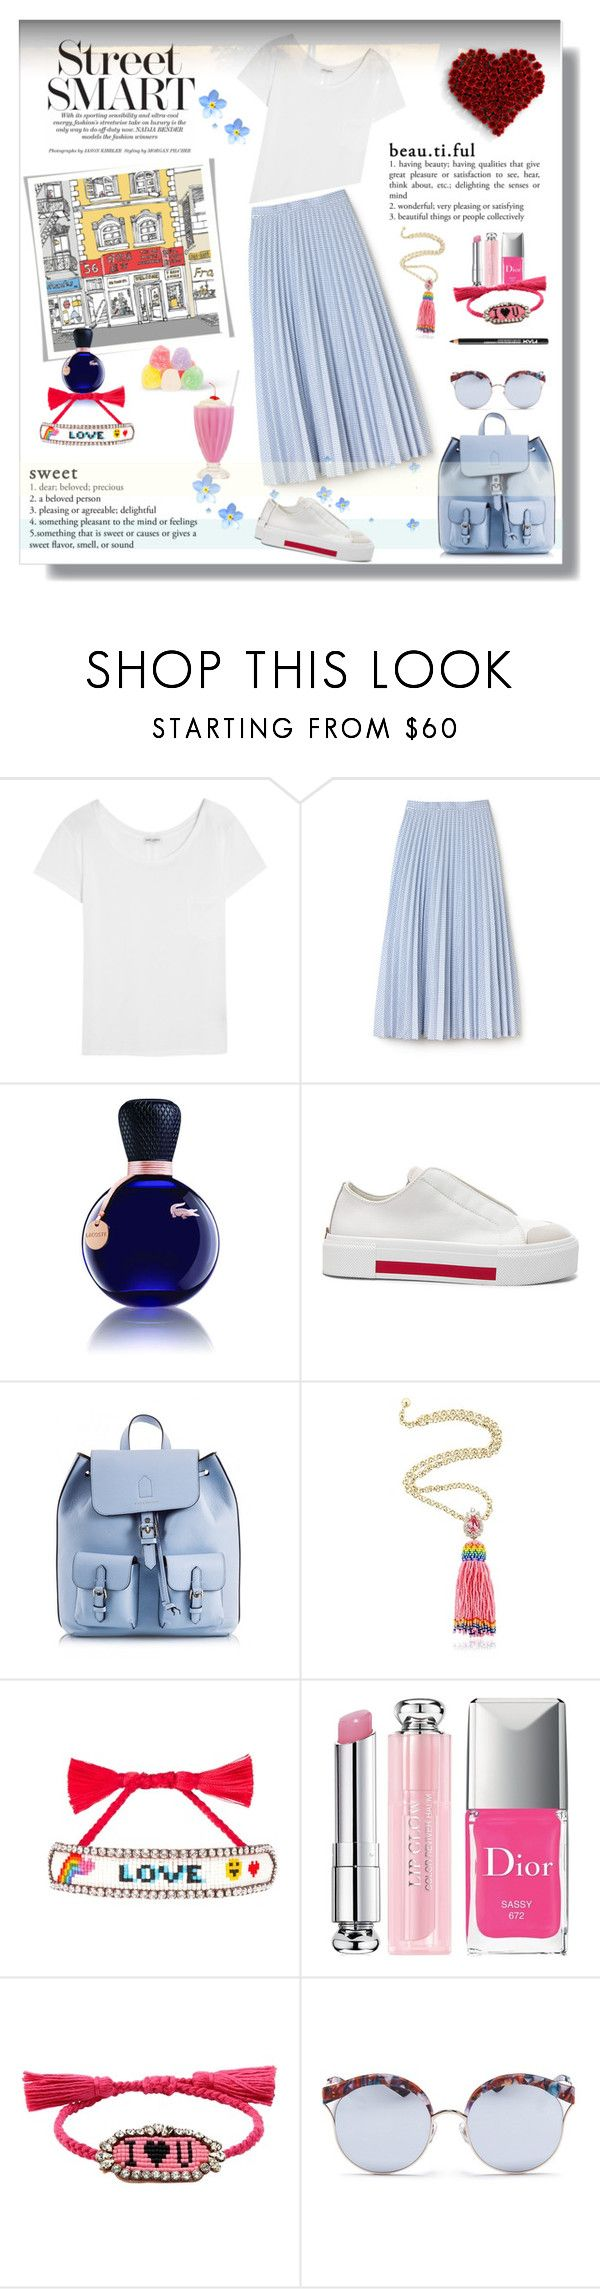 """Street Smart 💙😘"" by selmendonca ❤ liked on Polyvore featuring Yves Saint Laurent, Lacoste, Alexander McQueen, Coccinelle, Shourouk, Christian Dior, Stephane + Christian and NYX"